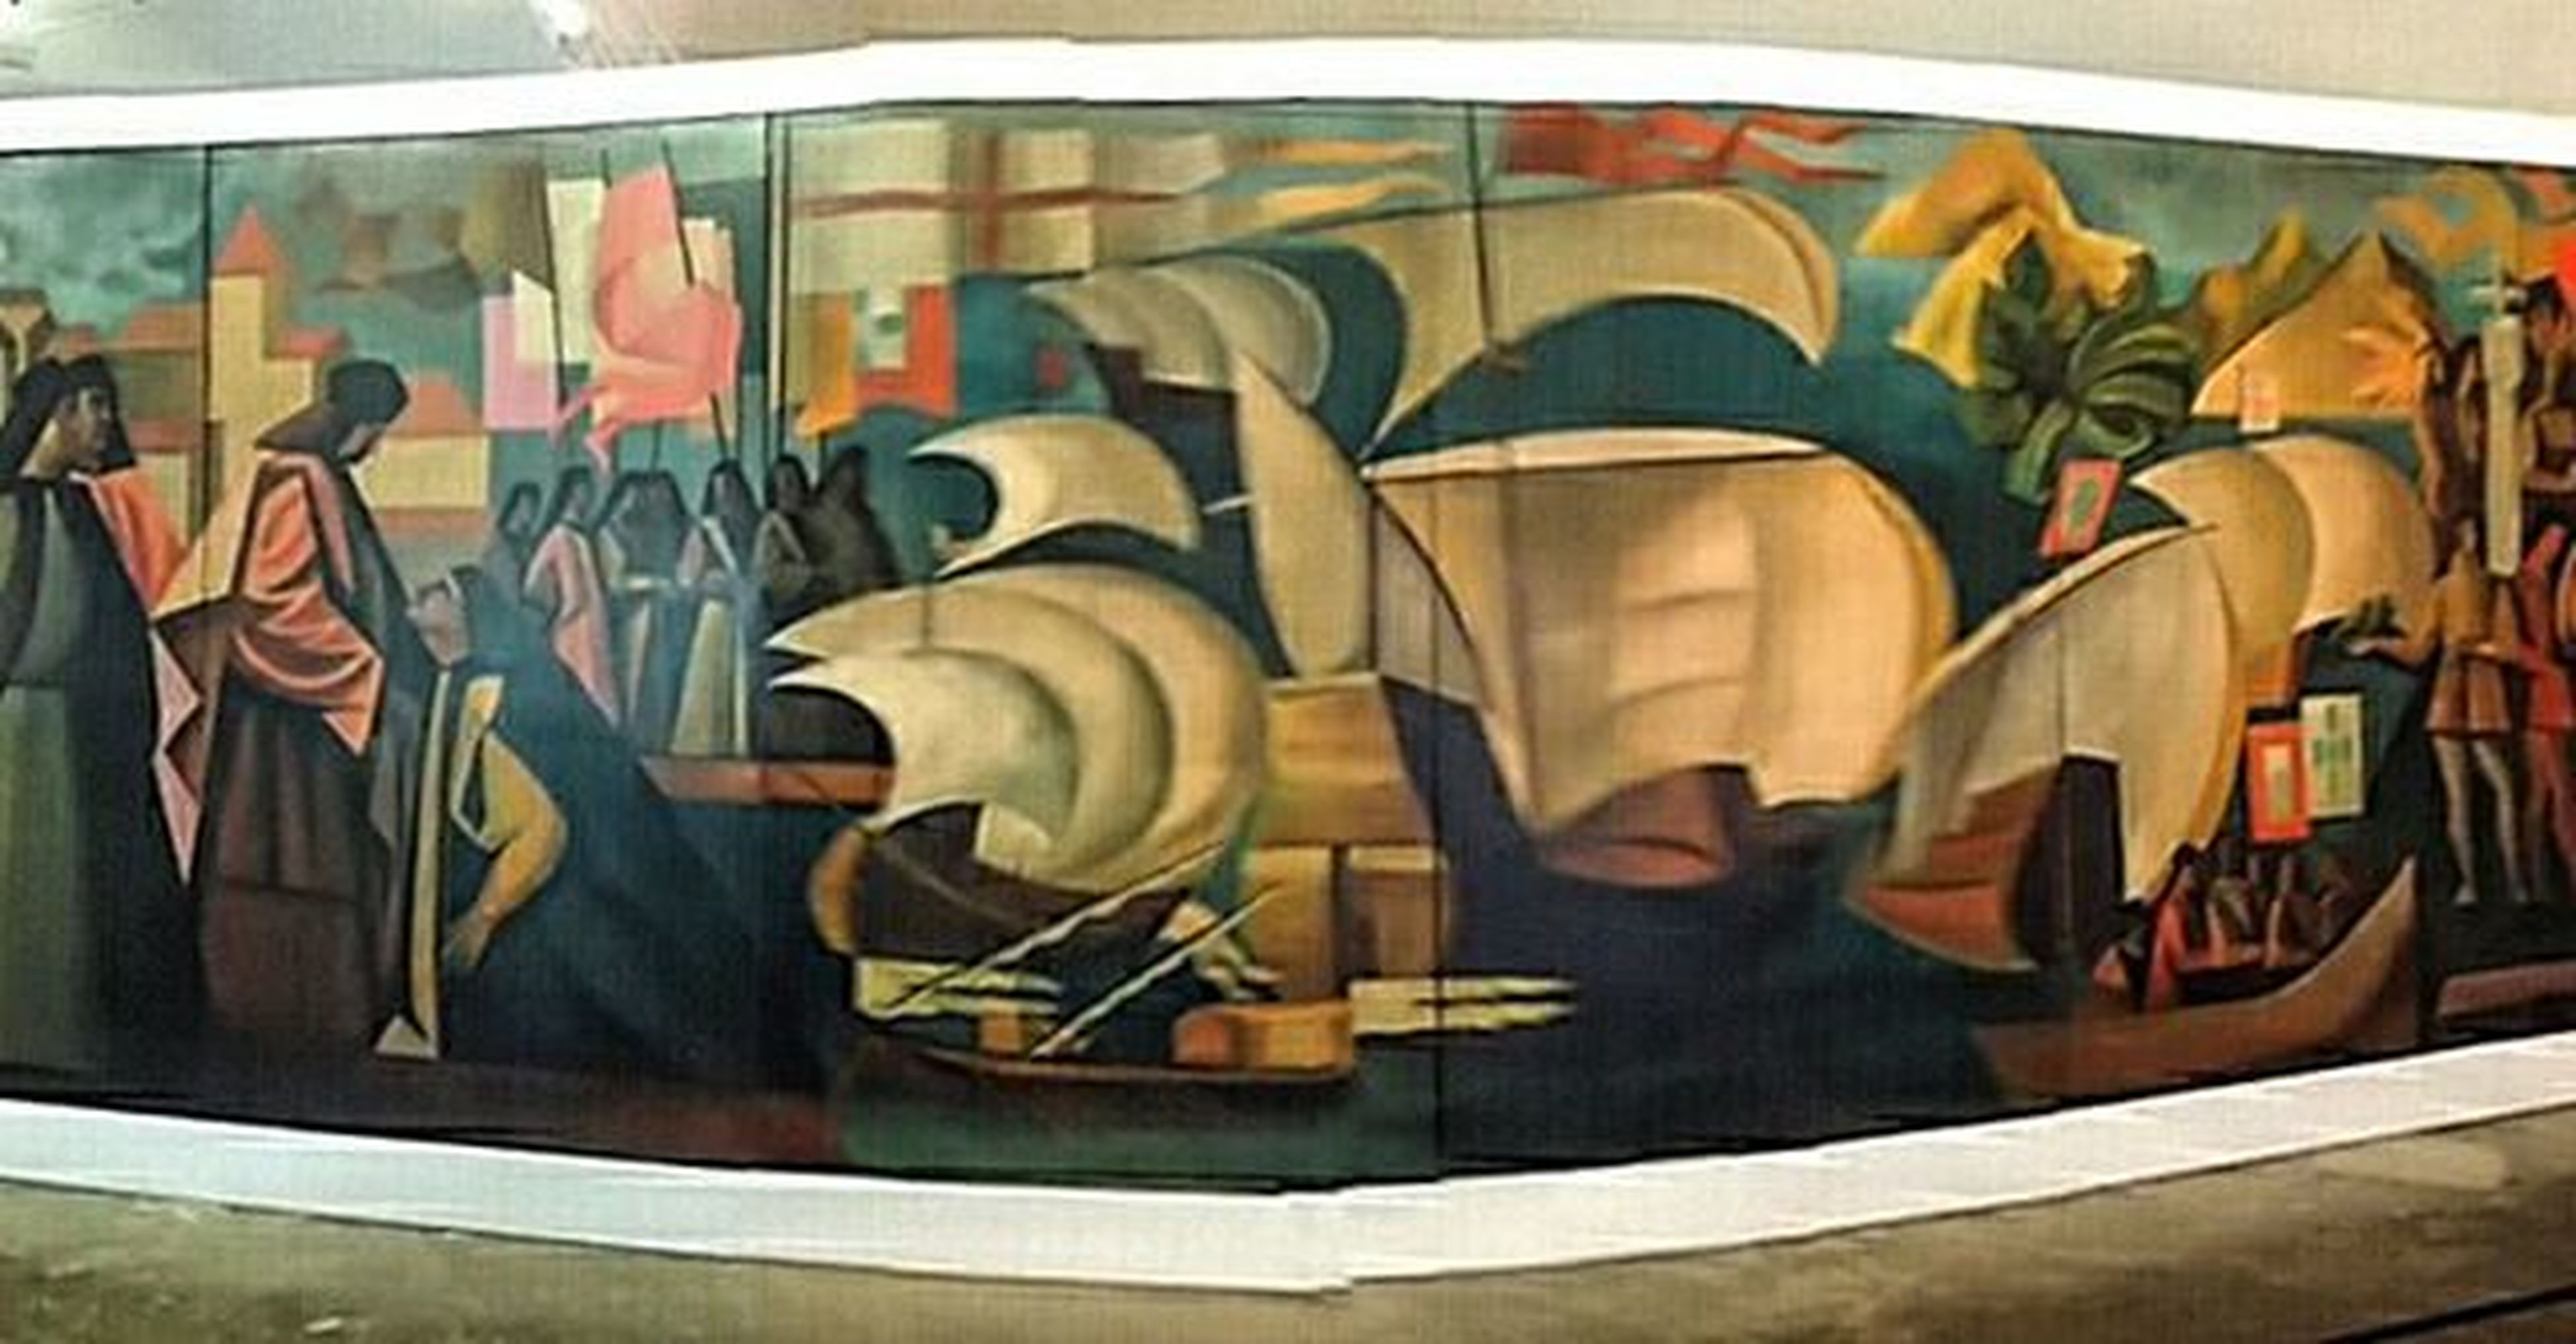 art and craft, art, creativity, indoors, multi colored, graffiti, wall - building feature, variation, built structure, no people, architecture, wall, human representation, arrangement, side by side, still life, choice, day, large group of objects, in a row